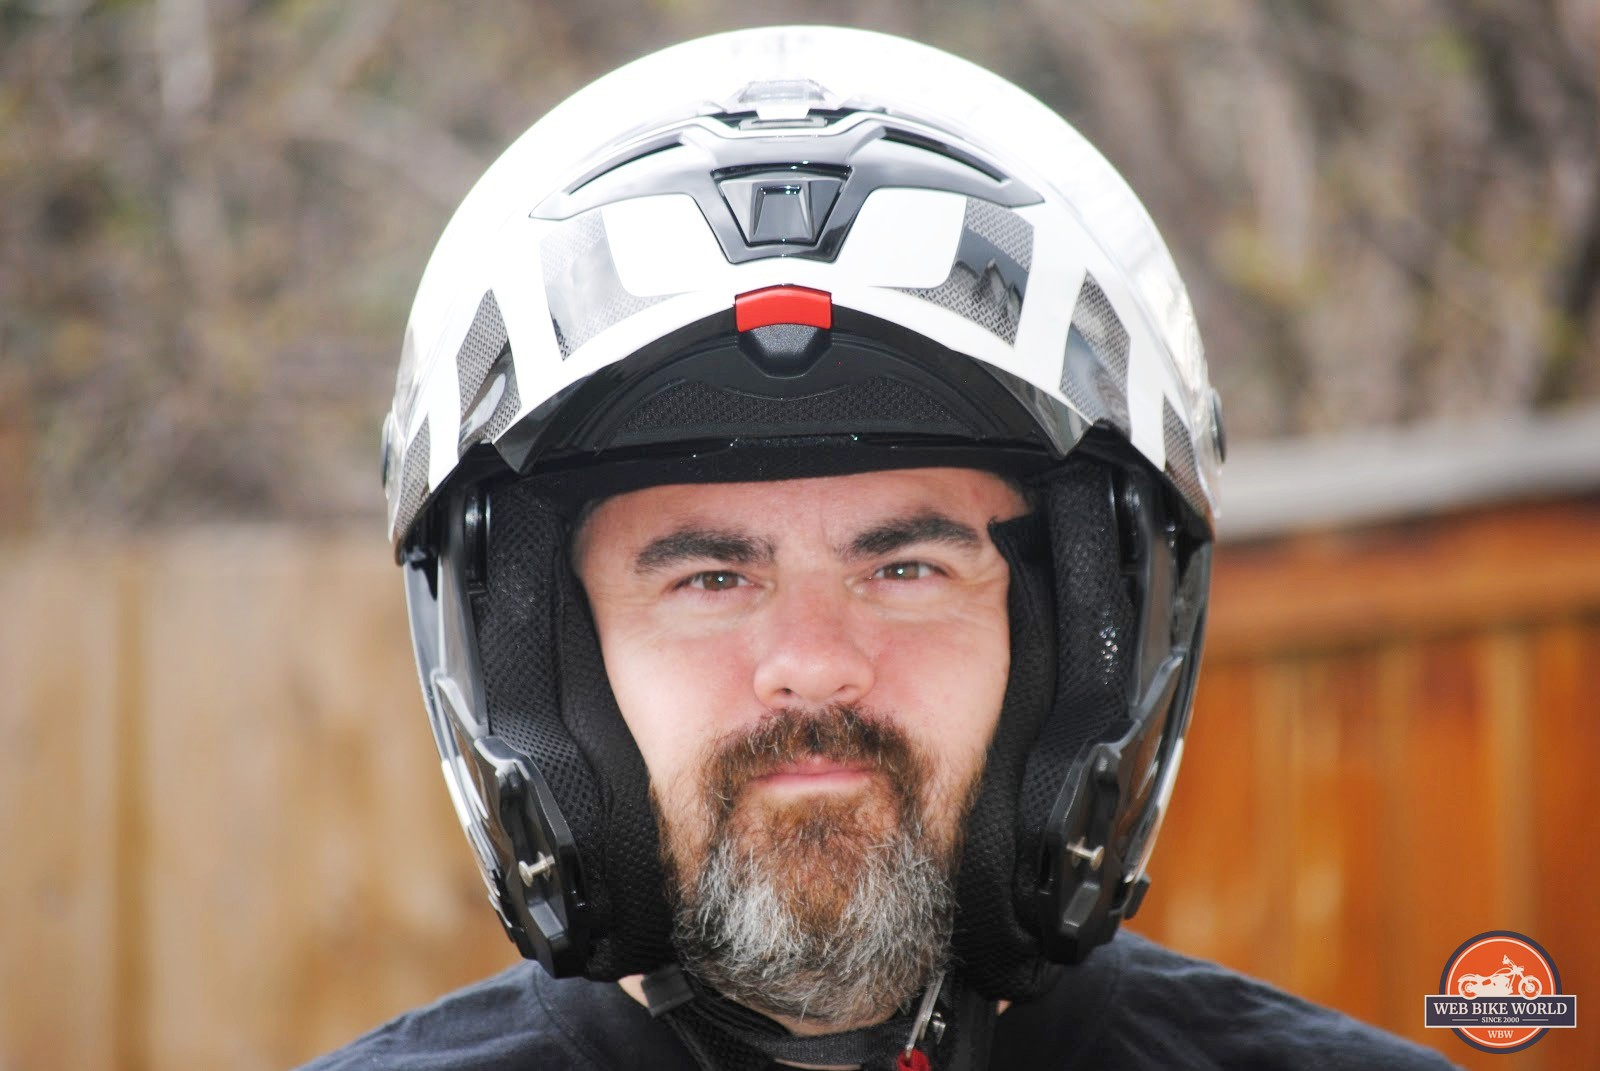 Bell SRT Modular Helmet visor up